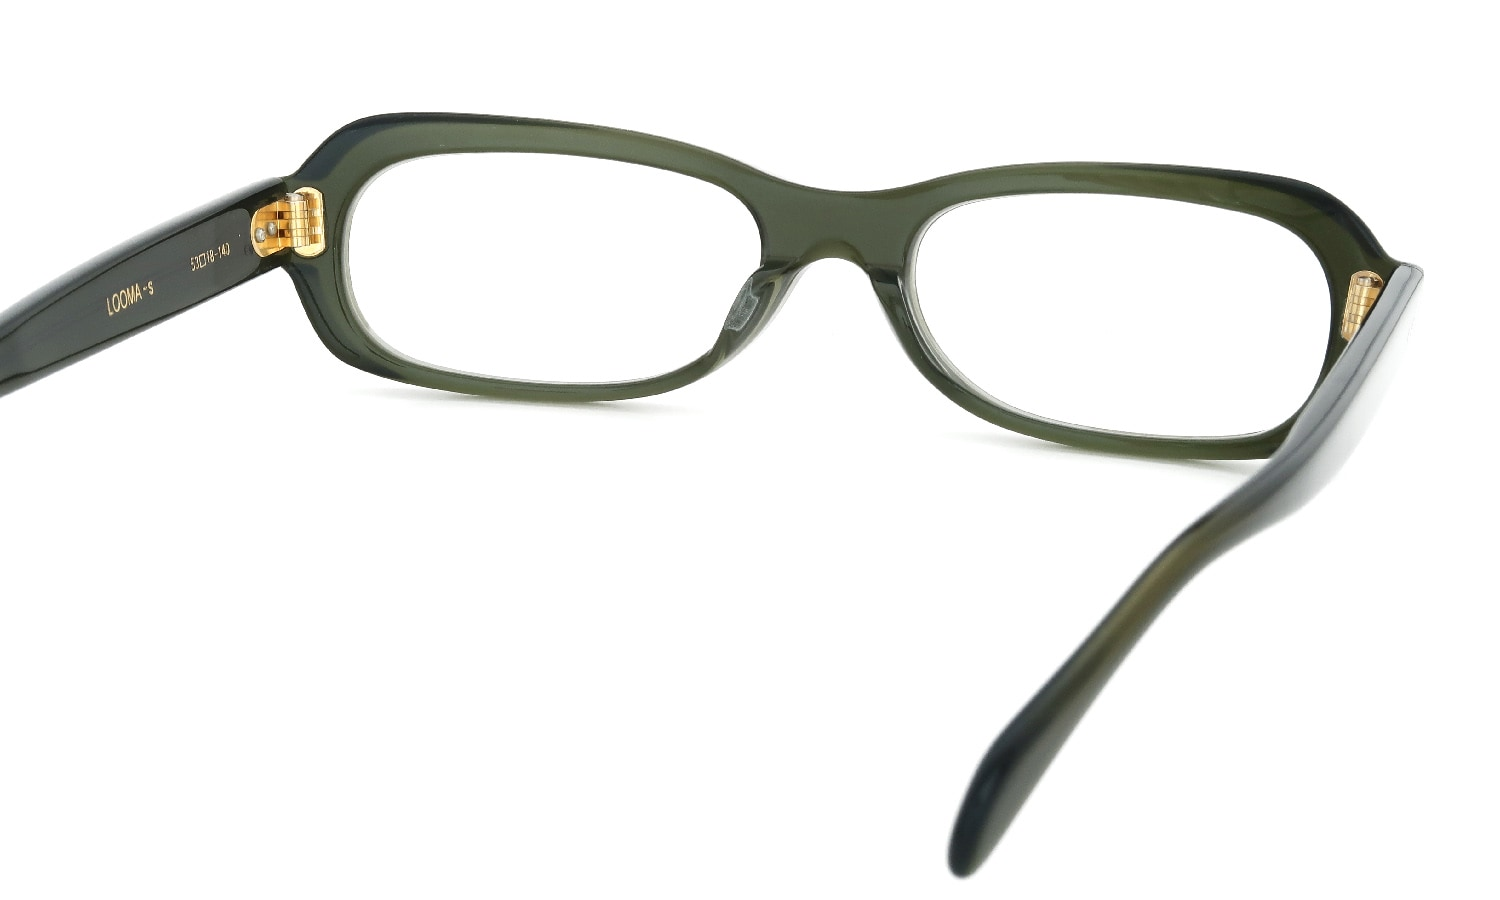 Oliver Goldsmith LOOMA-s Forest